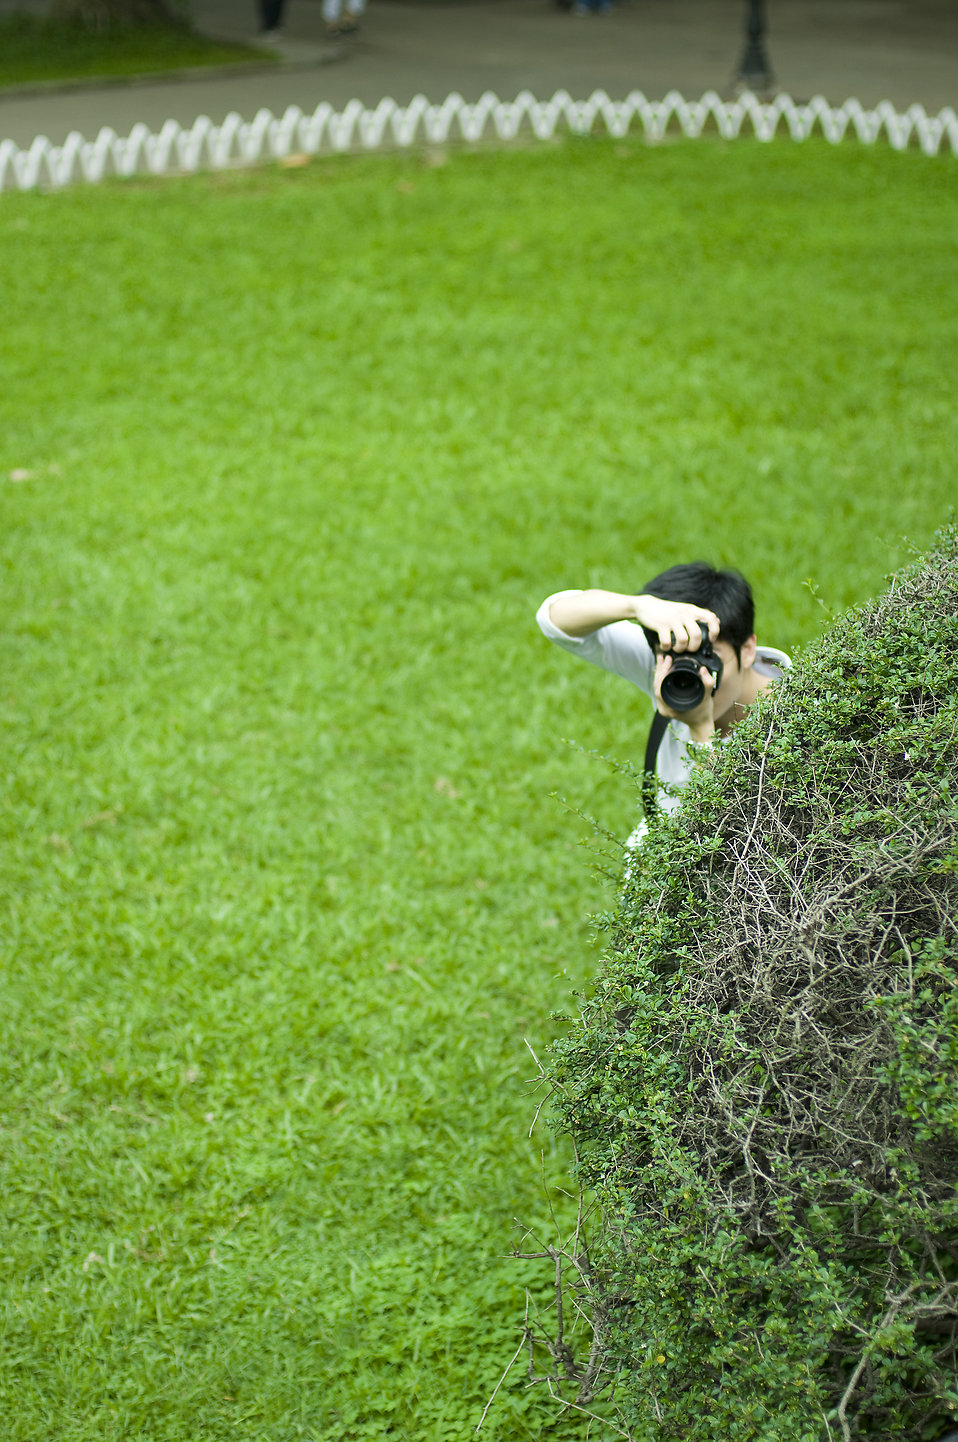 A cameraman taking a picture from behind a bush : Free Stock Photo